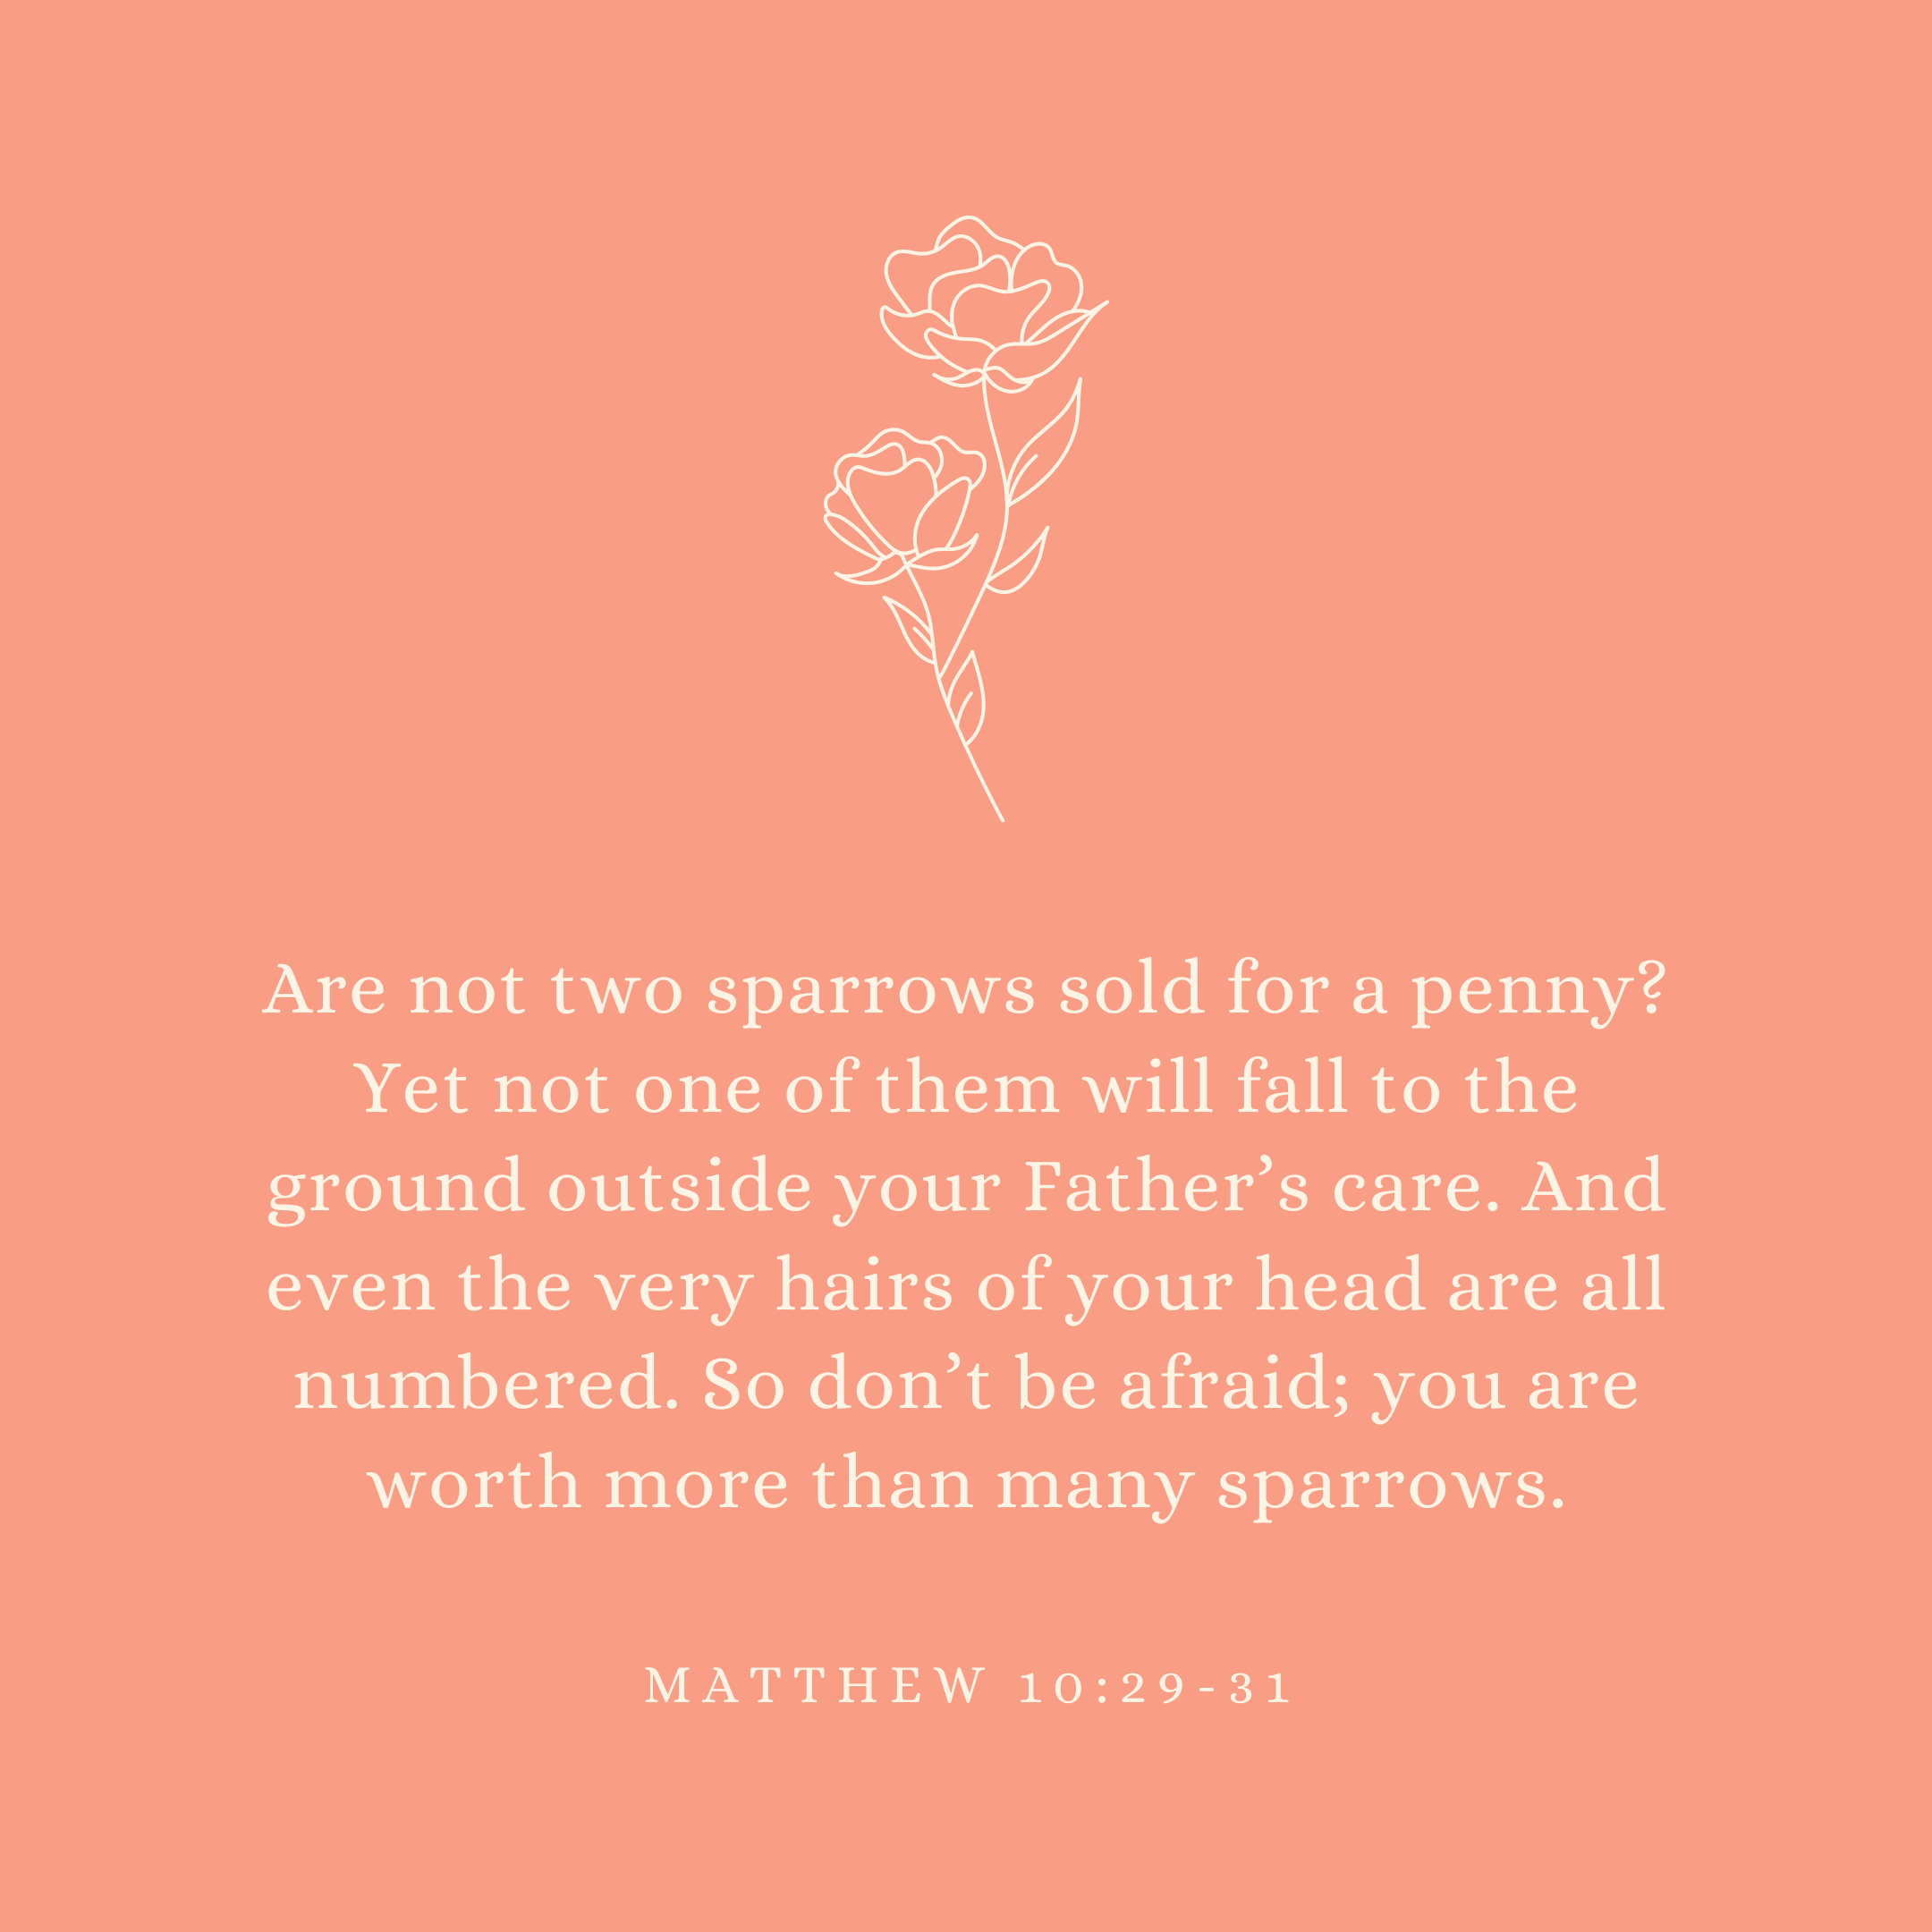 Matthew 10:29-31 Are not two sparrows sold for a penny? Yet not one of them will fall to the ground outside your Father's care. And even the very hairs of your head are all numbered. So don't be afraid; you are worth more than many sparrows.